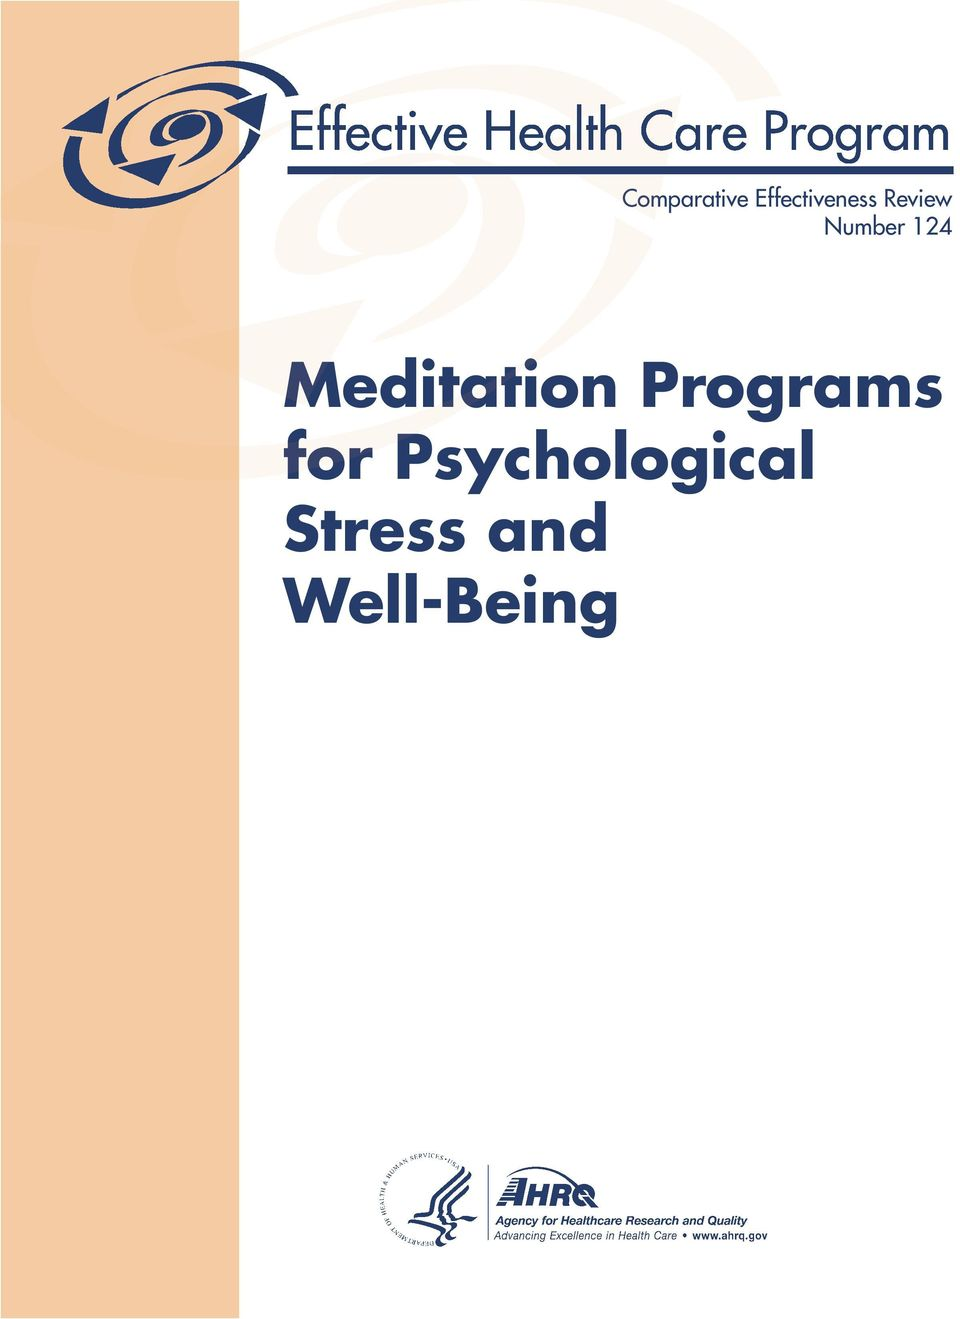 Meditation Programs for